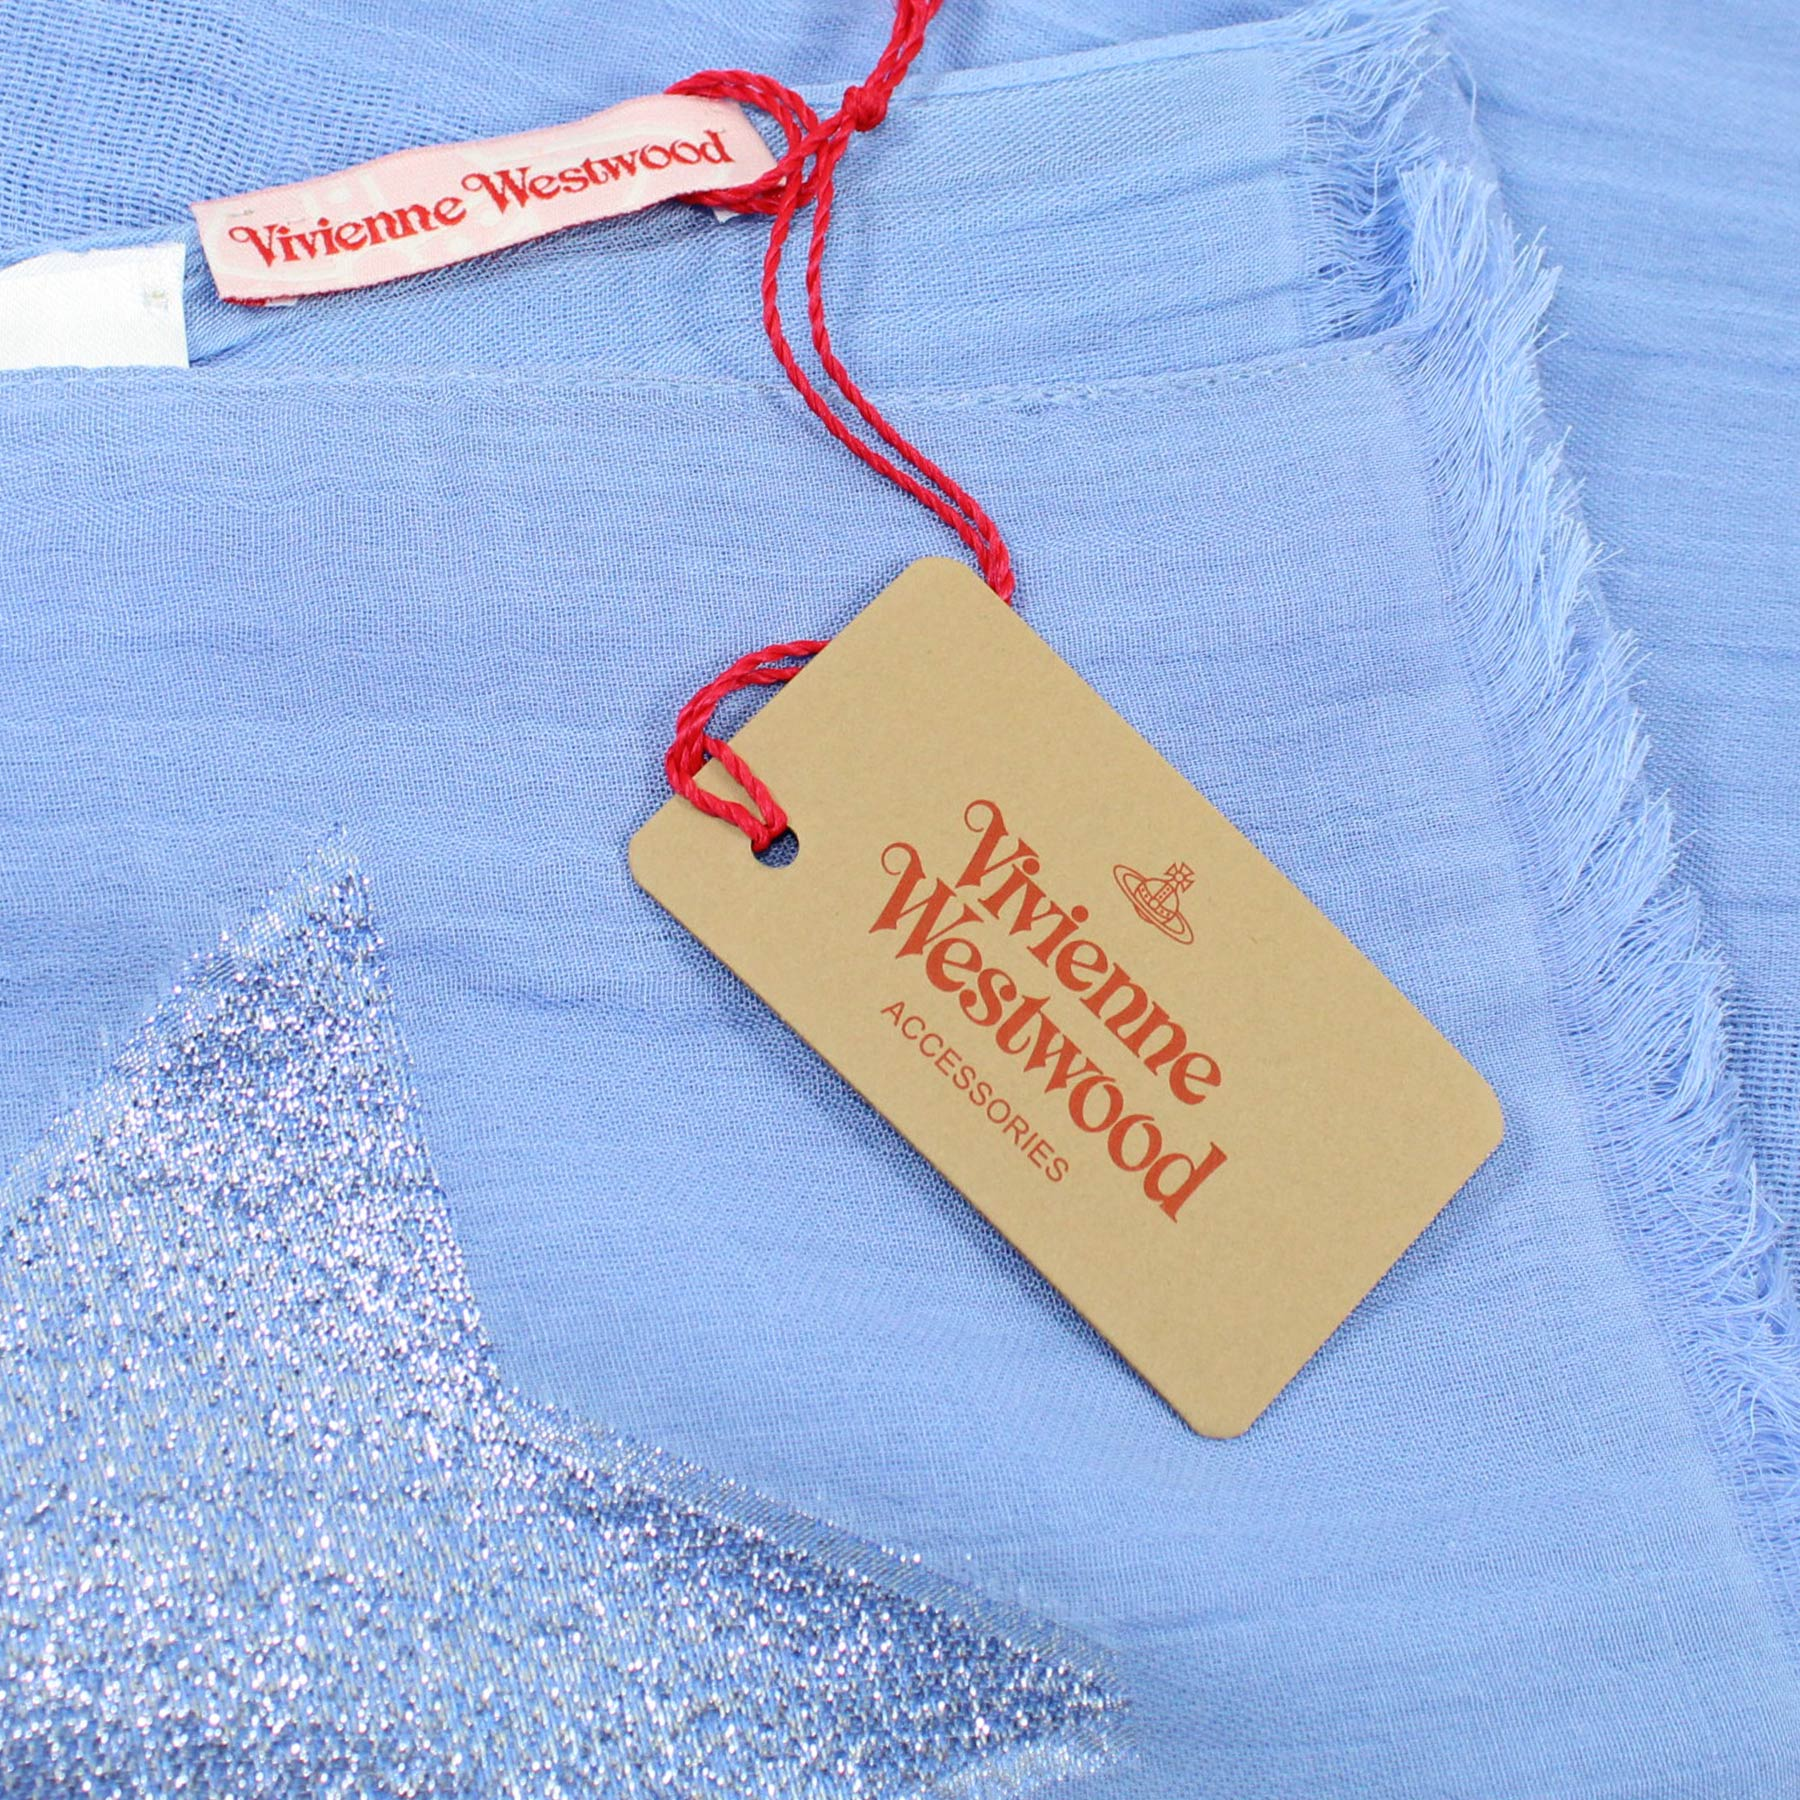 Vivienne Westwood Scarf Periwinkle Blue - Modal Cotton Blend Shawl FINAL SALE